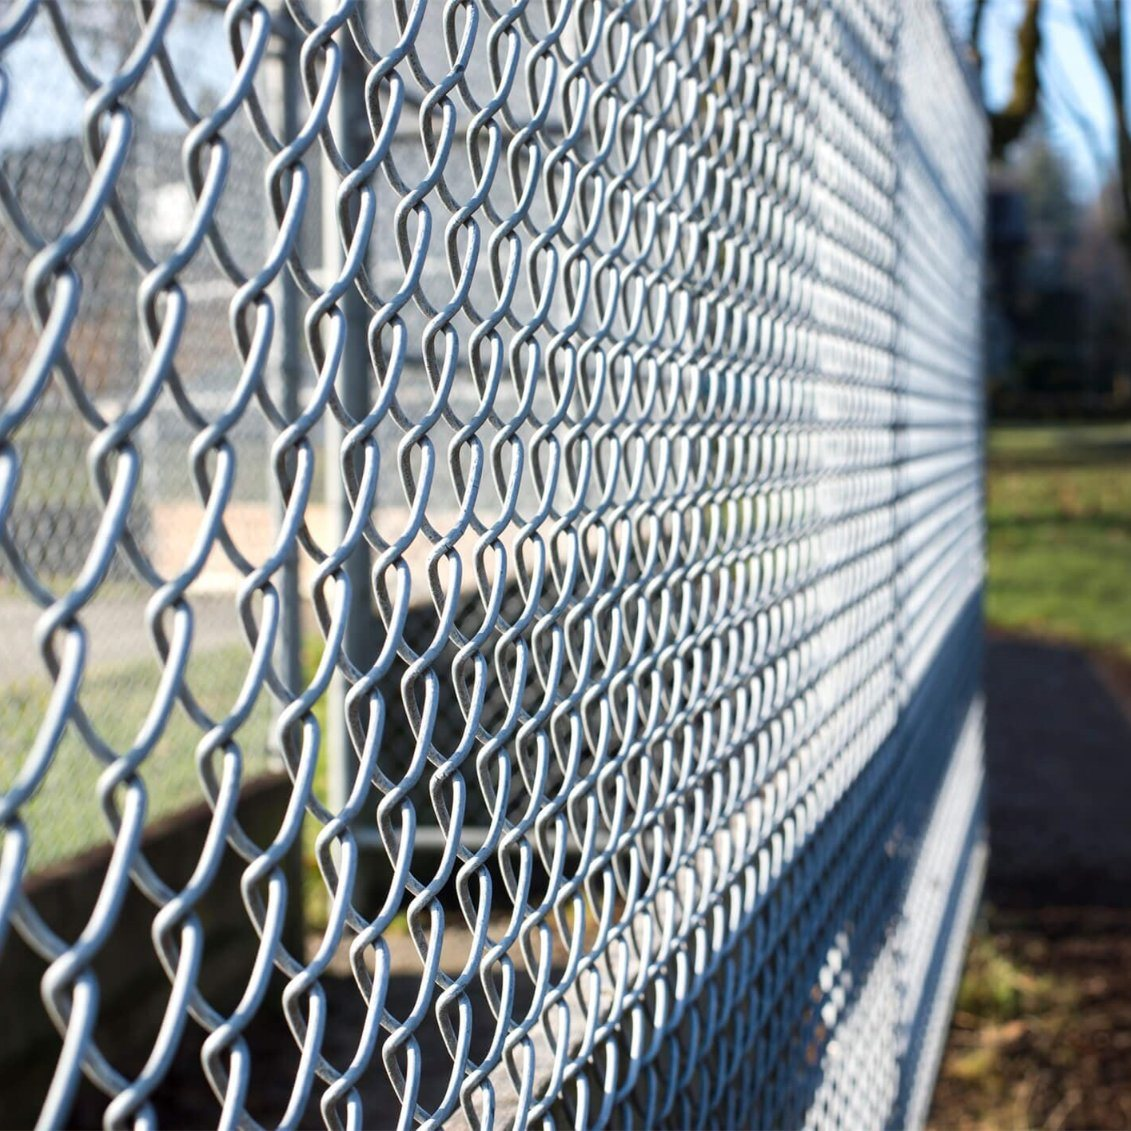 China Factory Price PVC Coated Wire Mesh Fence Photos & Pictures ...